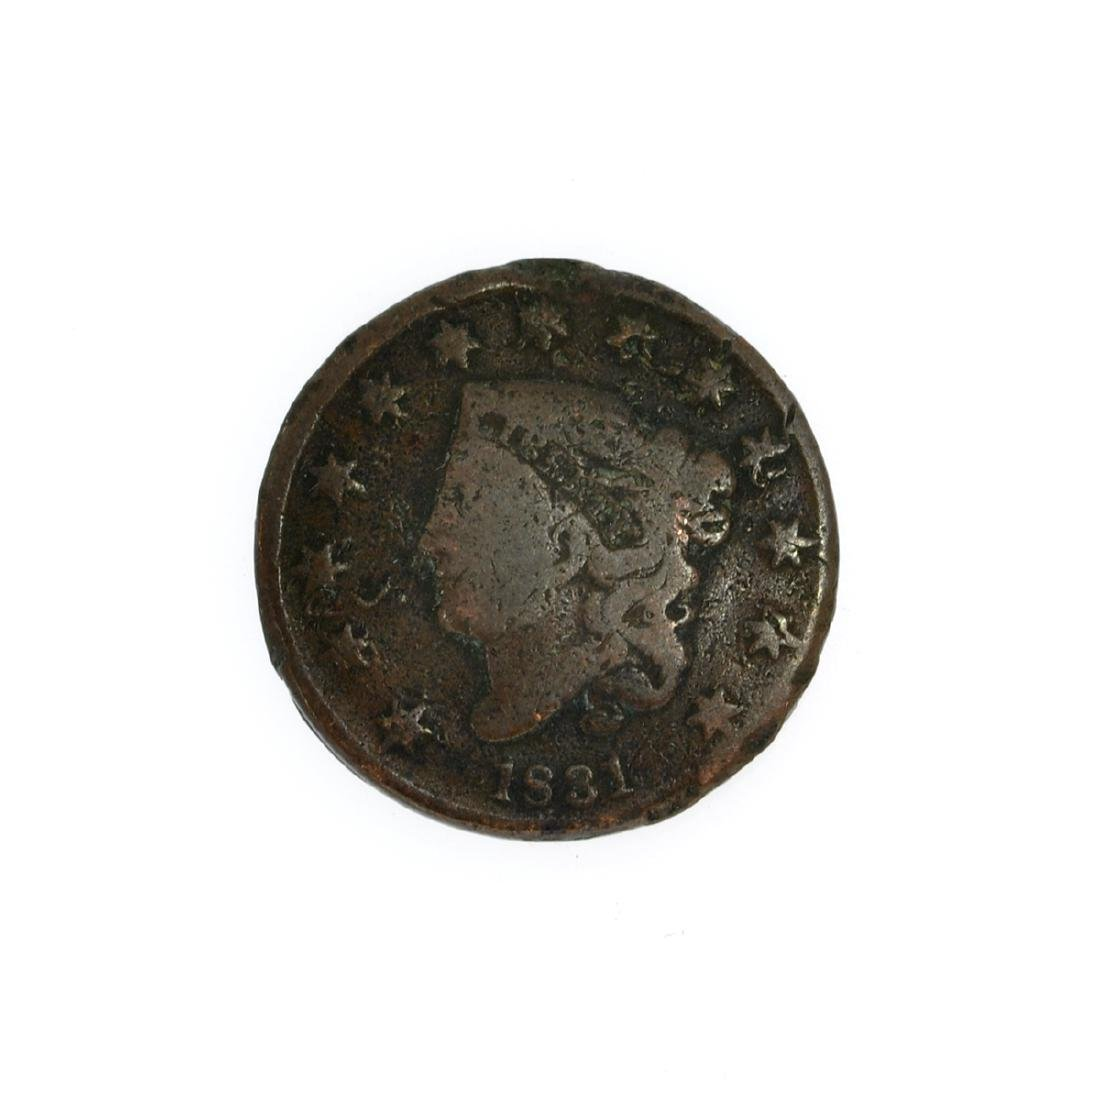 Rare 1831 Large Cent Coin